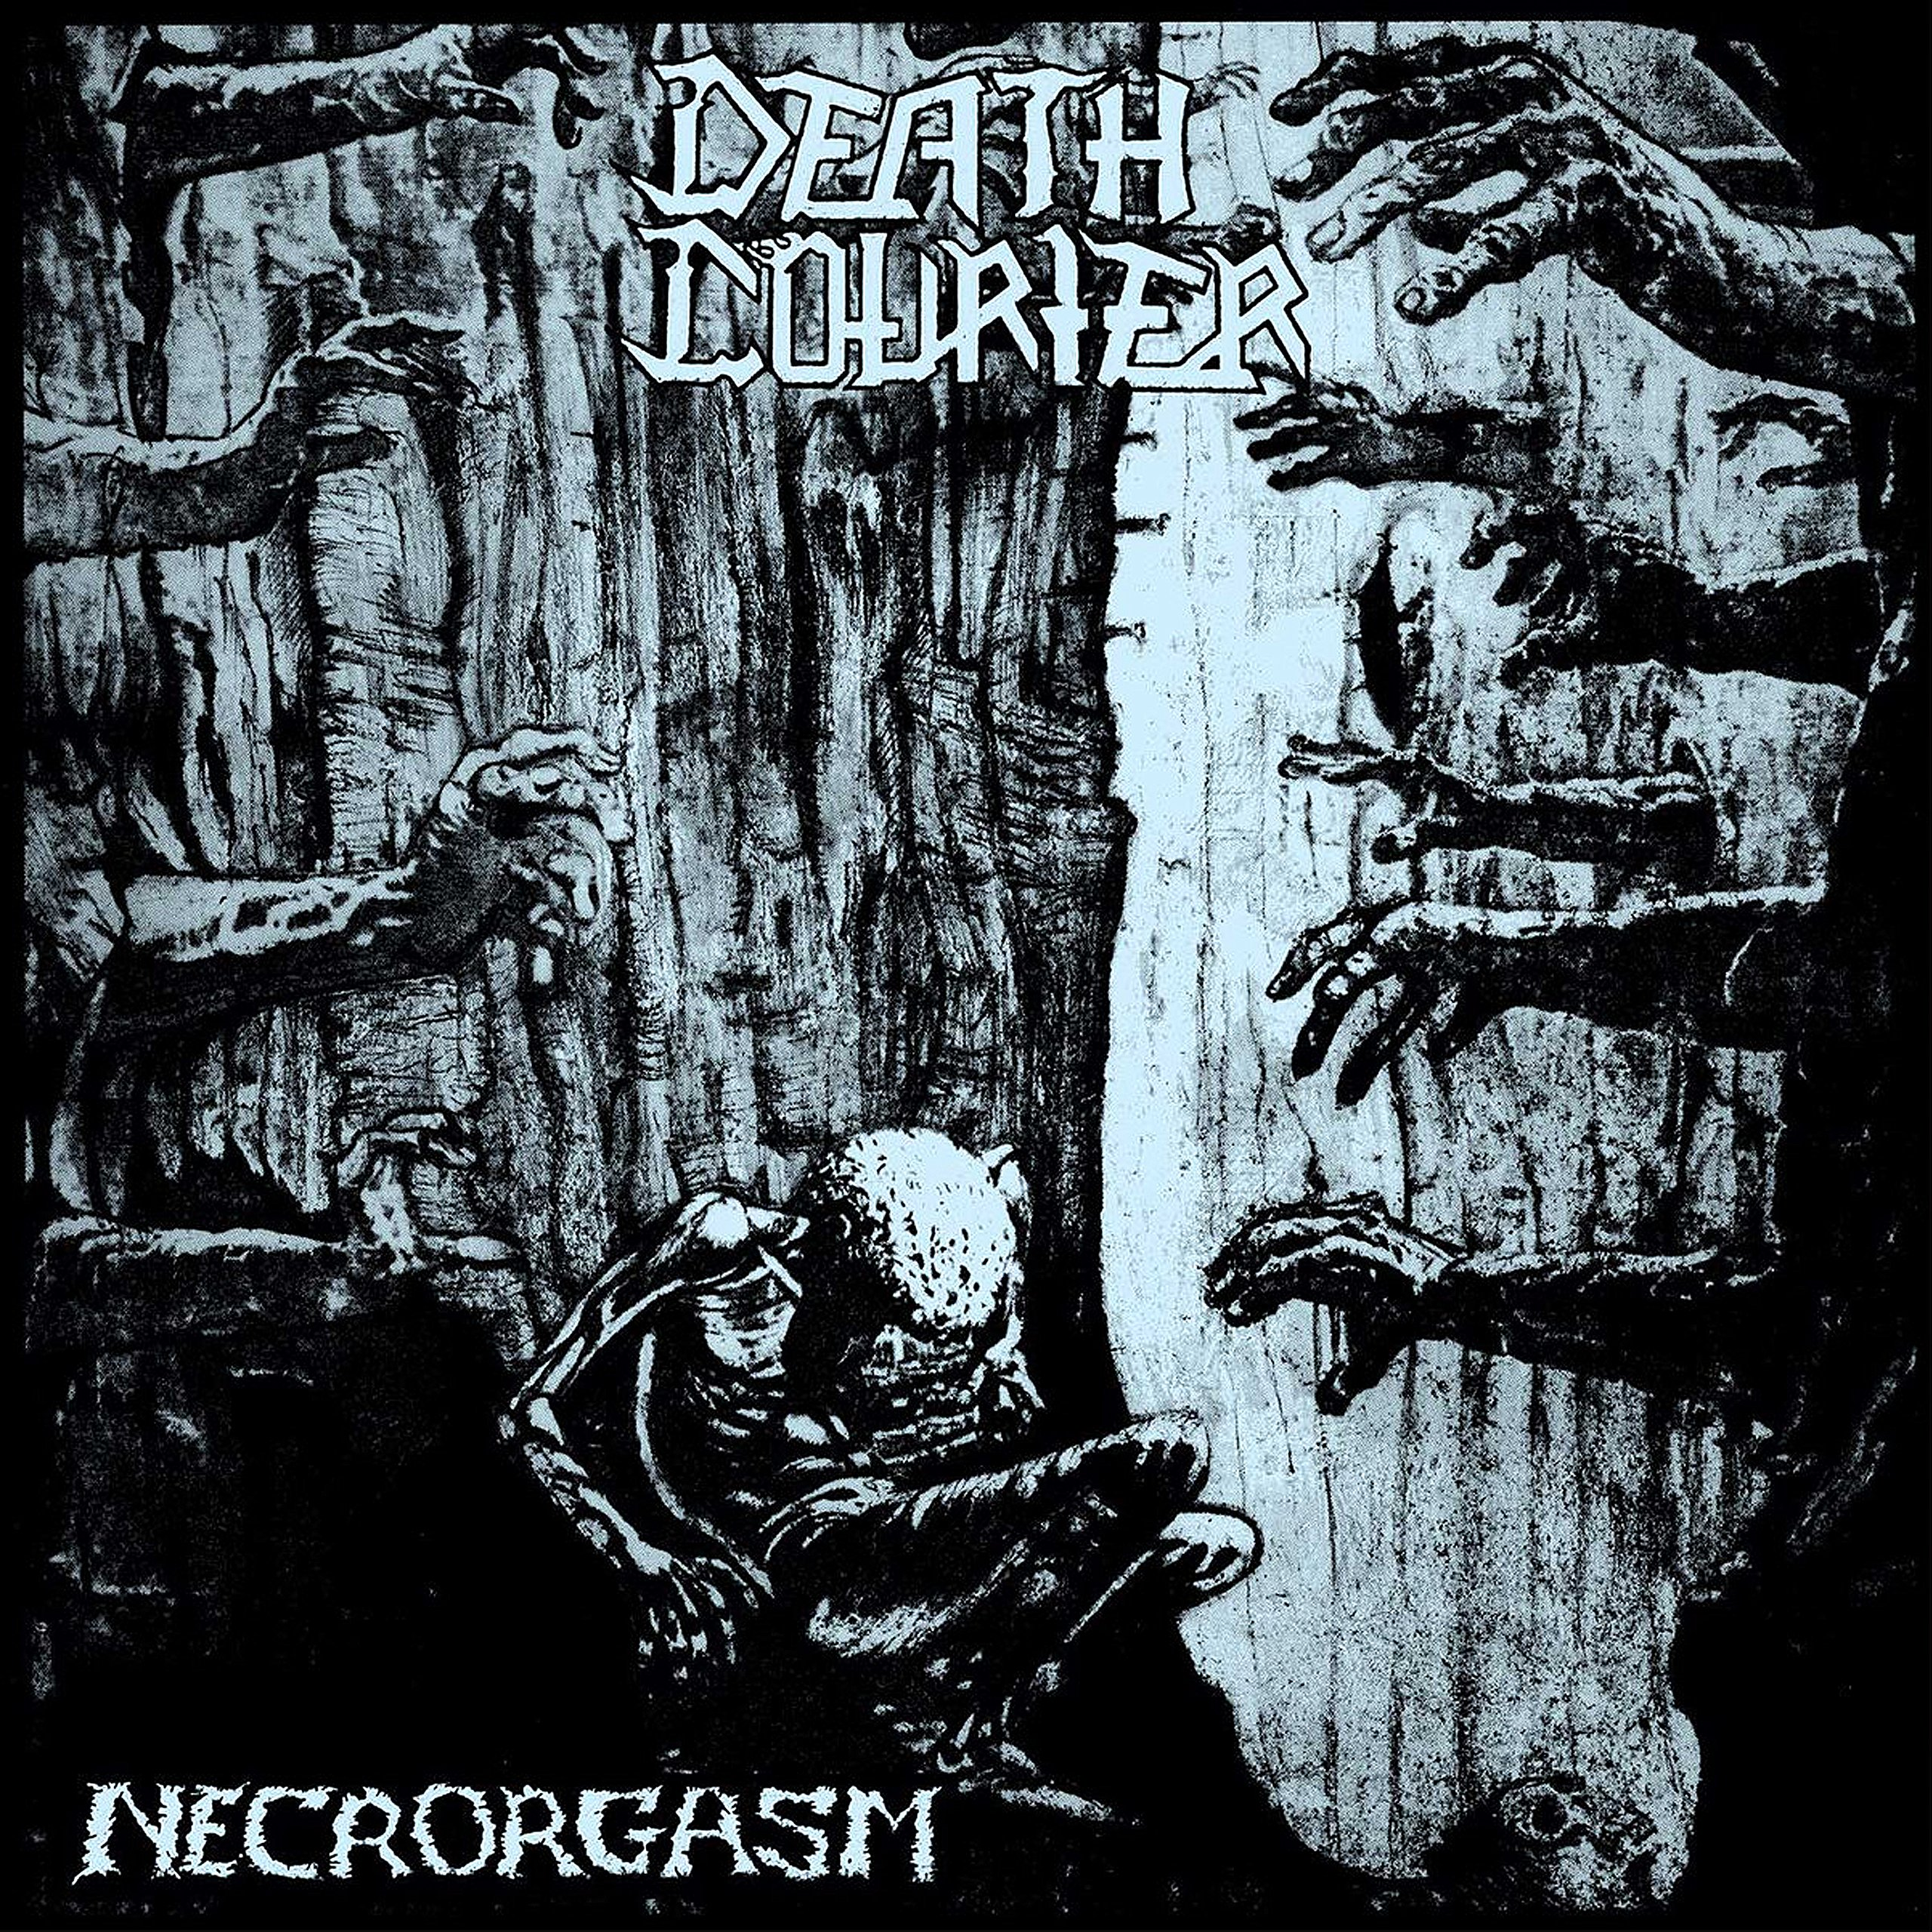 Death Courier - Demo (Extended Play)